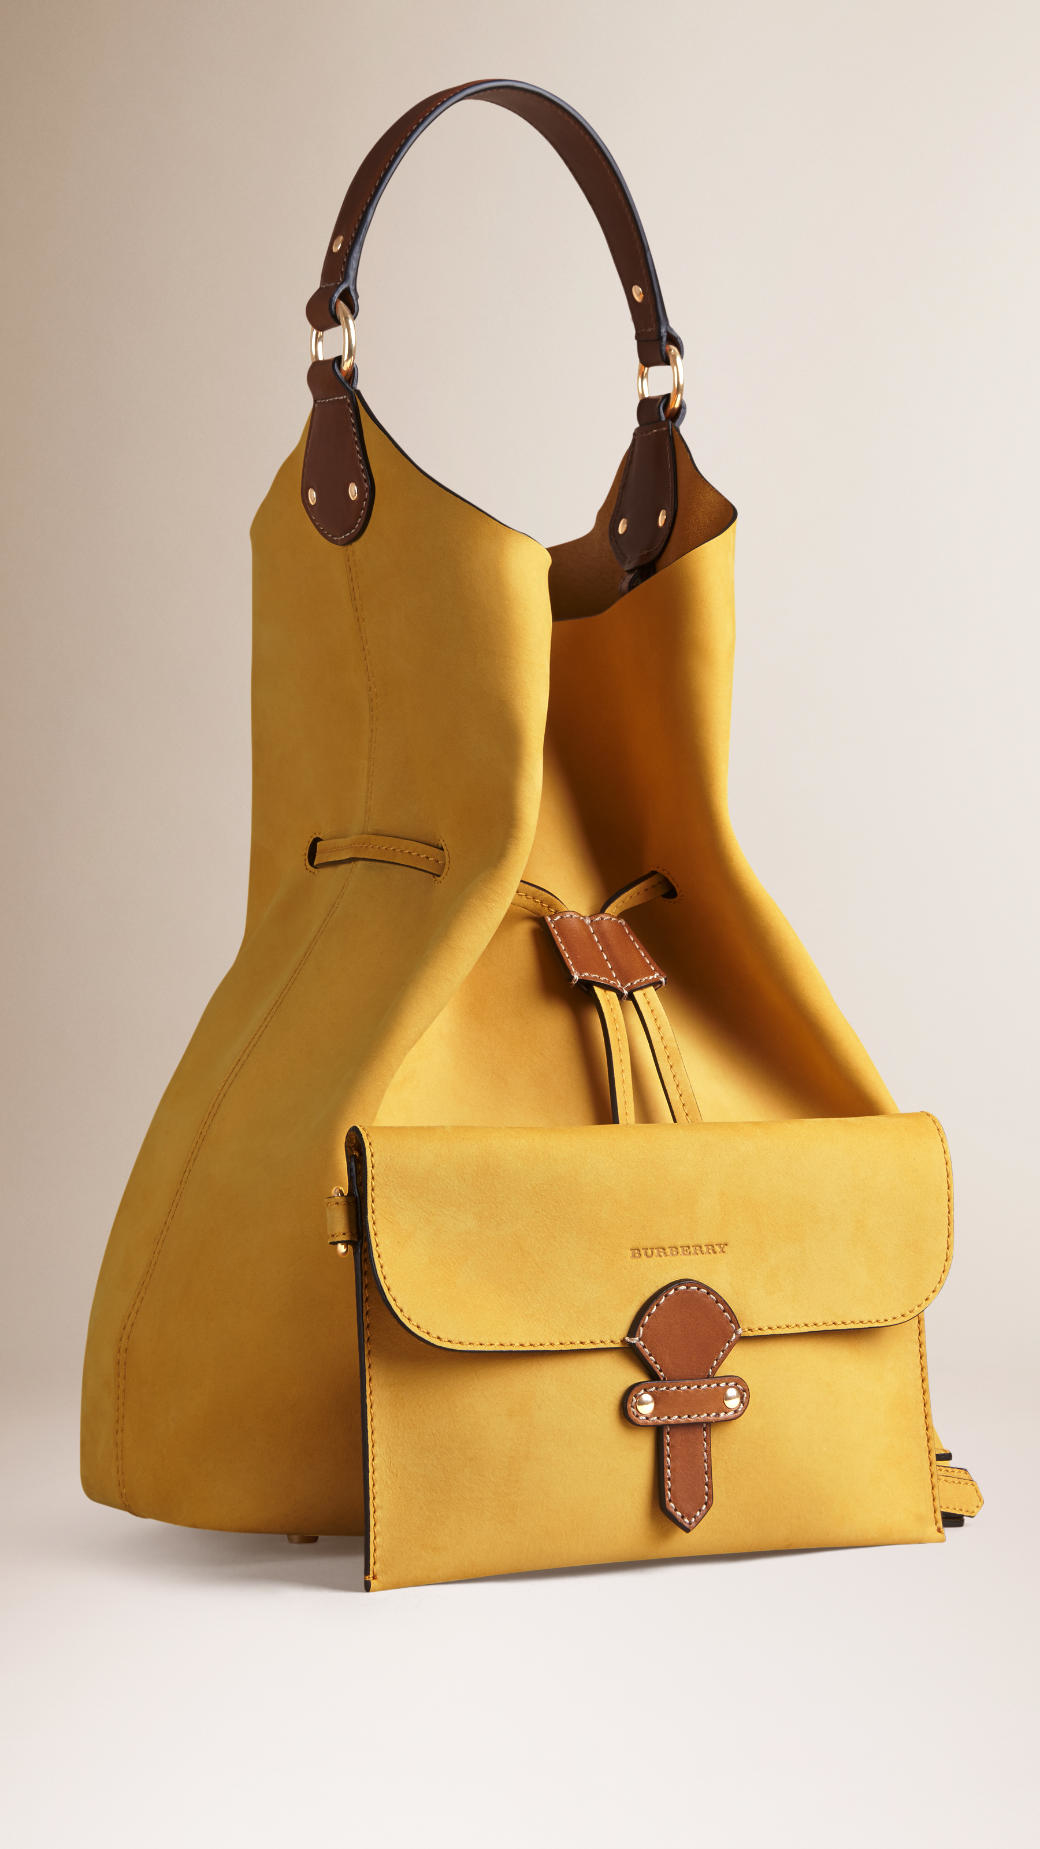 Burberry The Large Ashby Leather Bag In Yellow Lyst